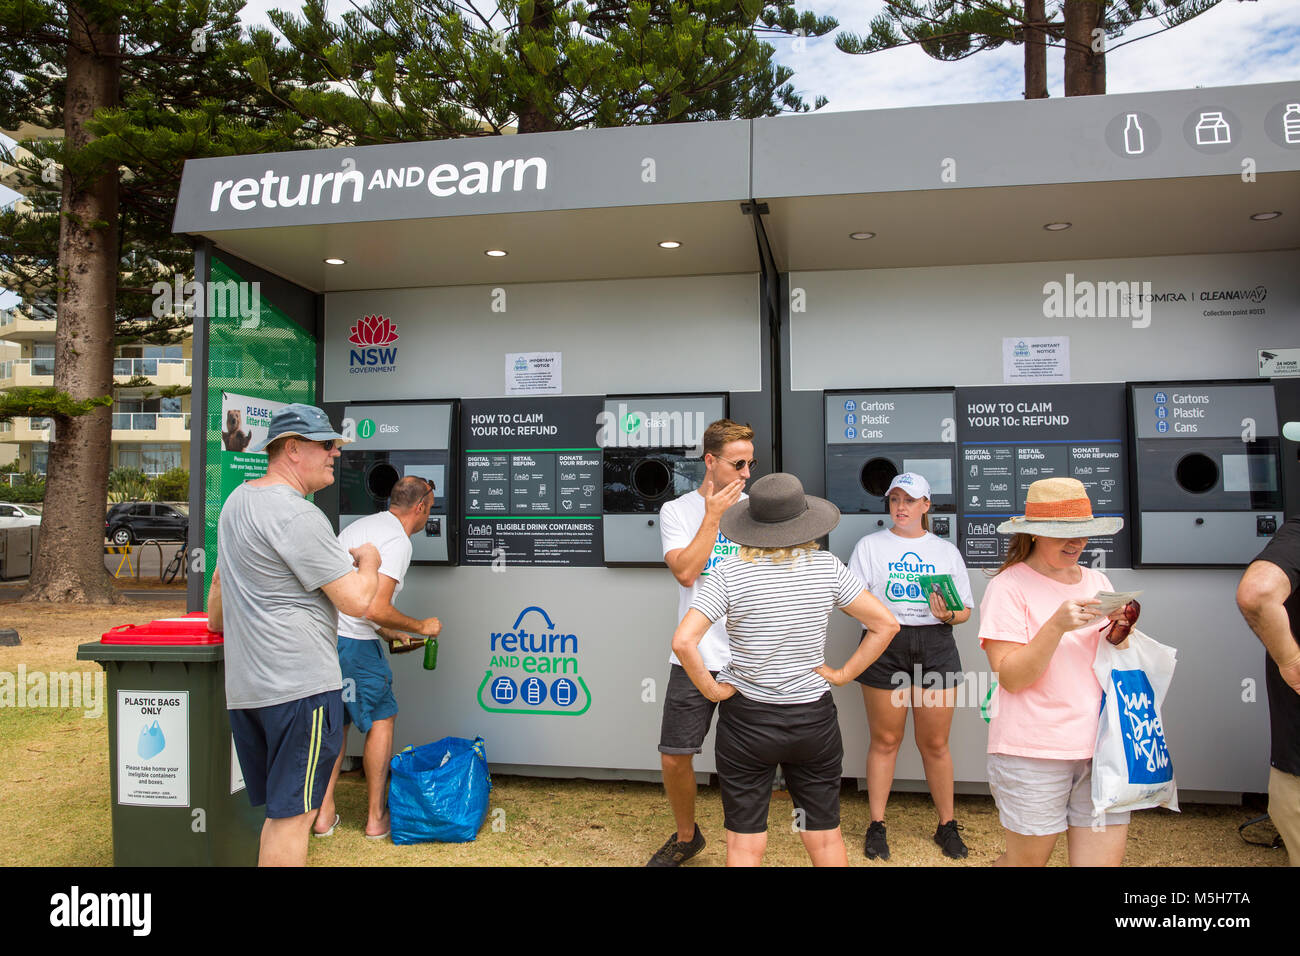 The NSW Government continues to roll out its container deposit scheme known as Return and Earn, where 10c can be - Stock Image